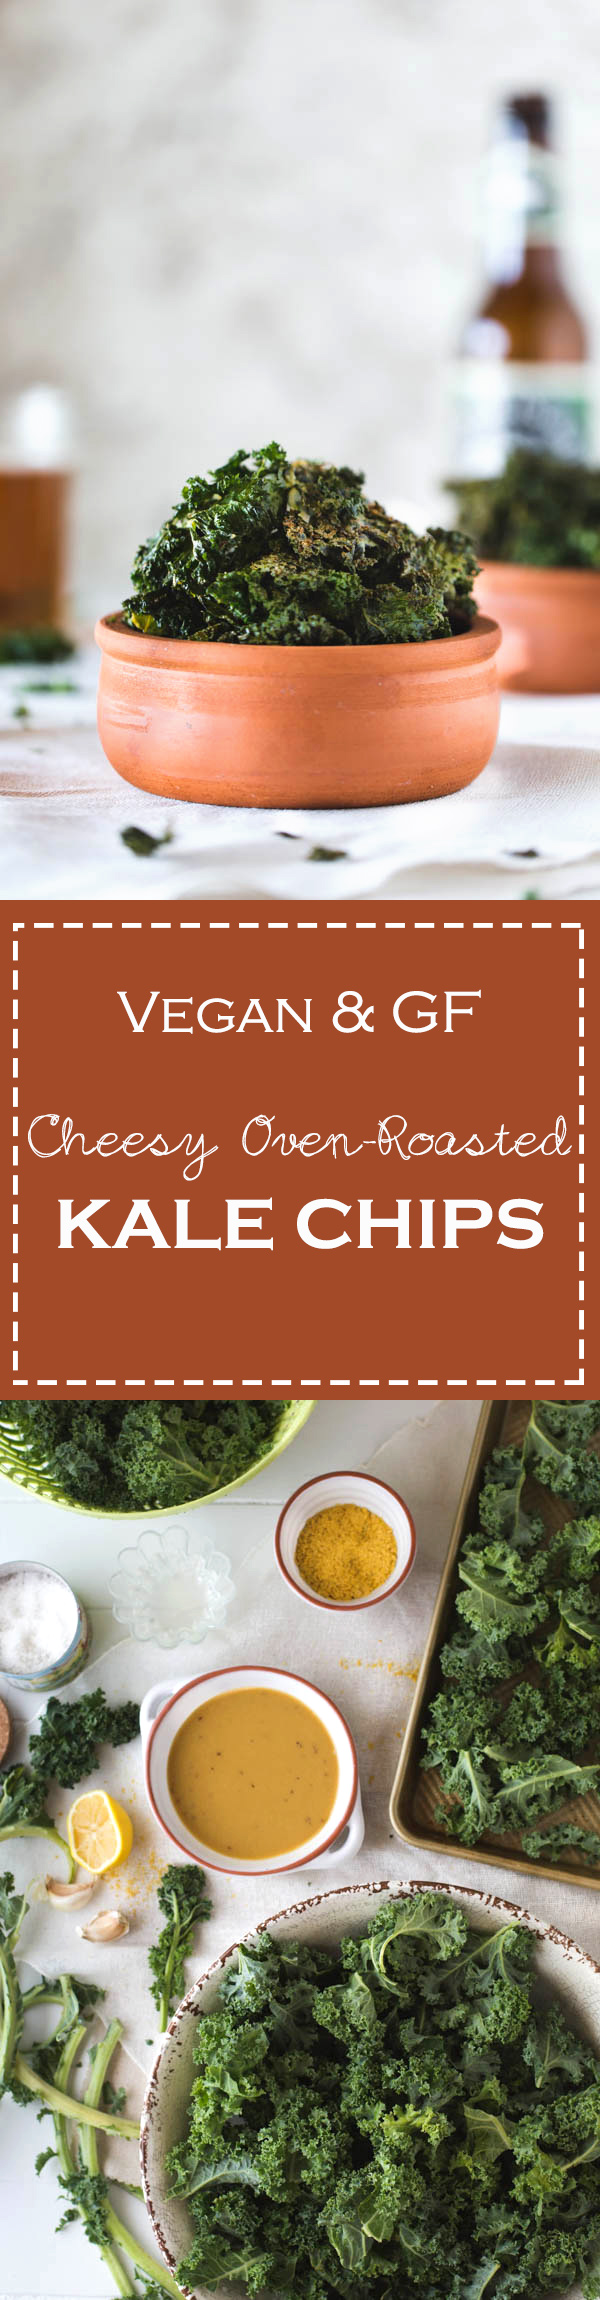 Vegan & GF Cheesy Oven Roasted Kale Chips made with a tahini and nutritional yeast dressing. A healthy snack that you can make for your family.